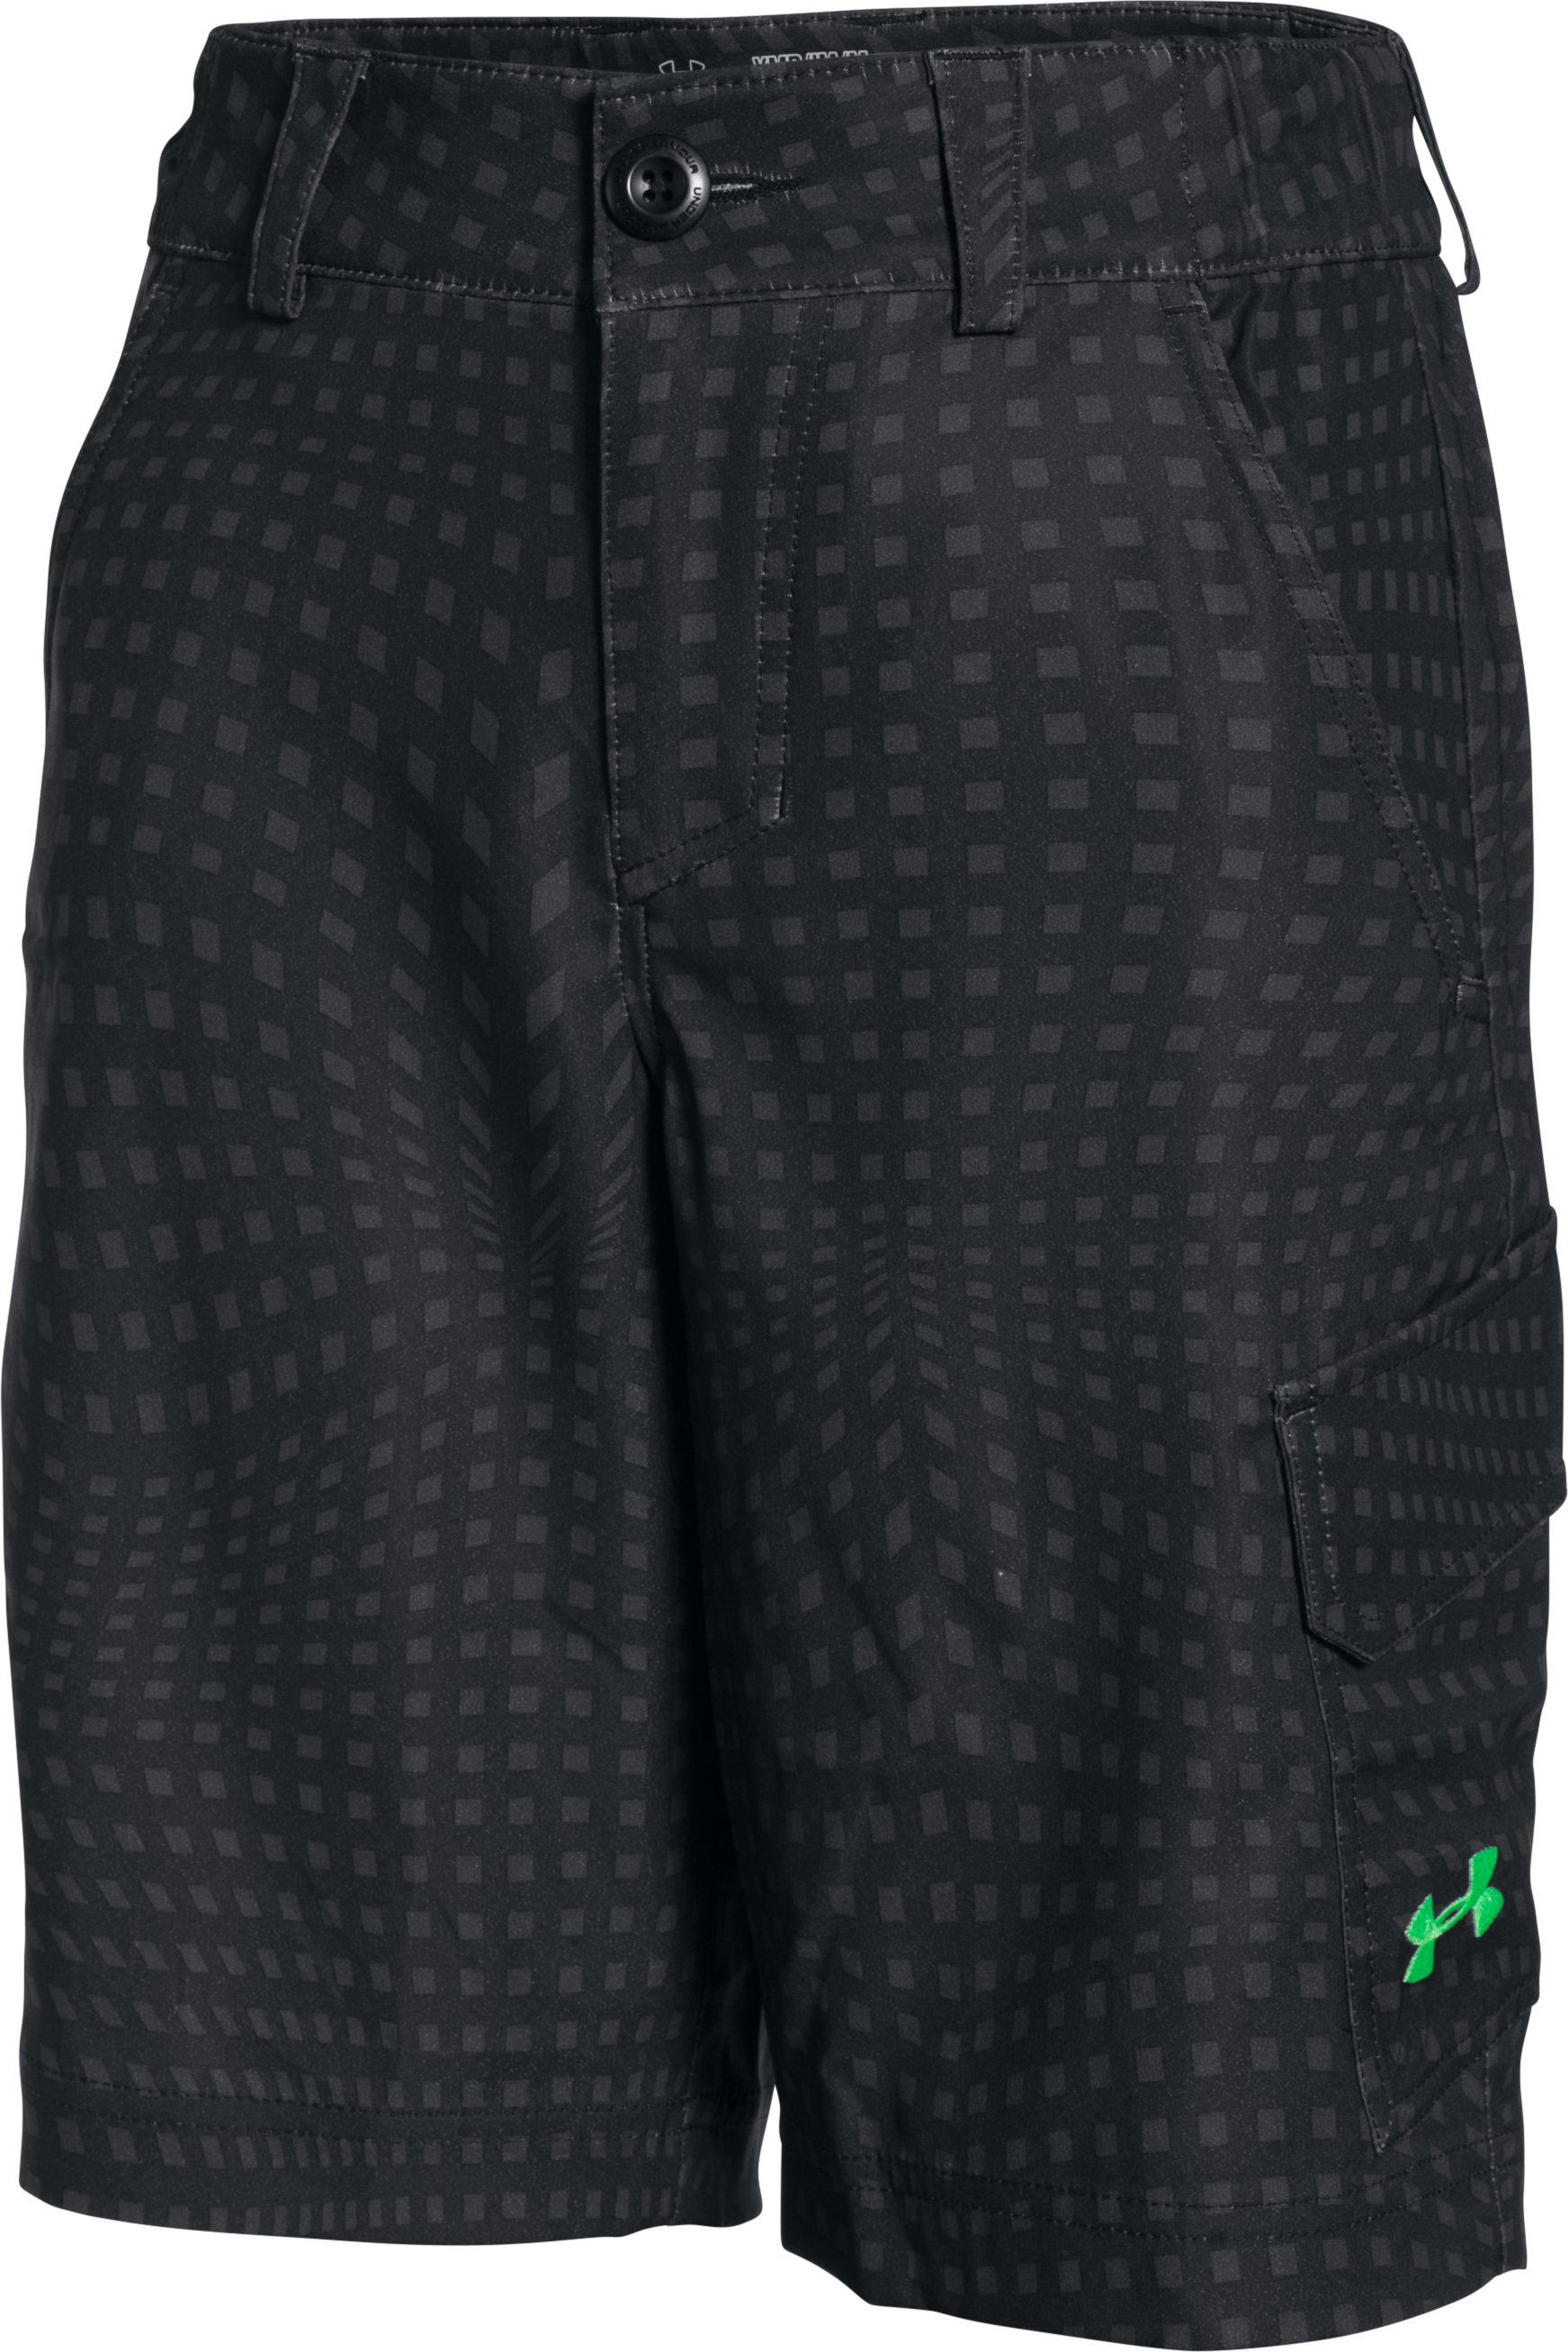 Boys' UA Shark Bait Cargo Shorts, Black ,